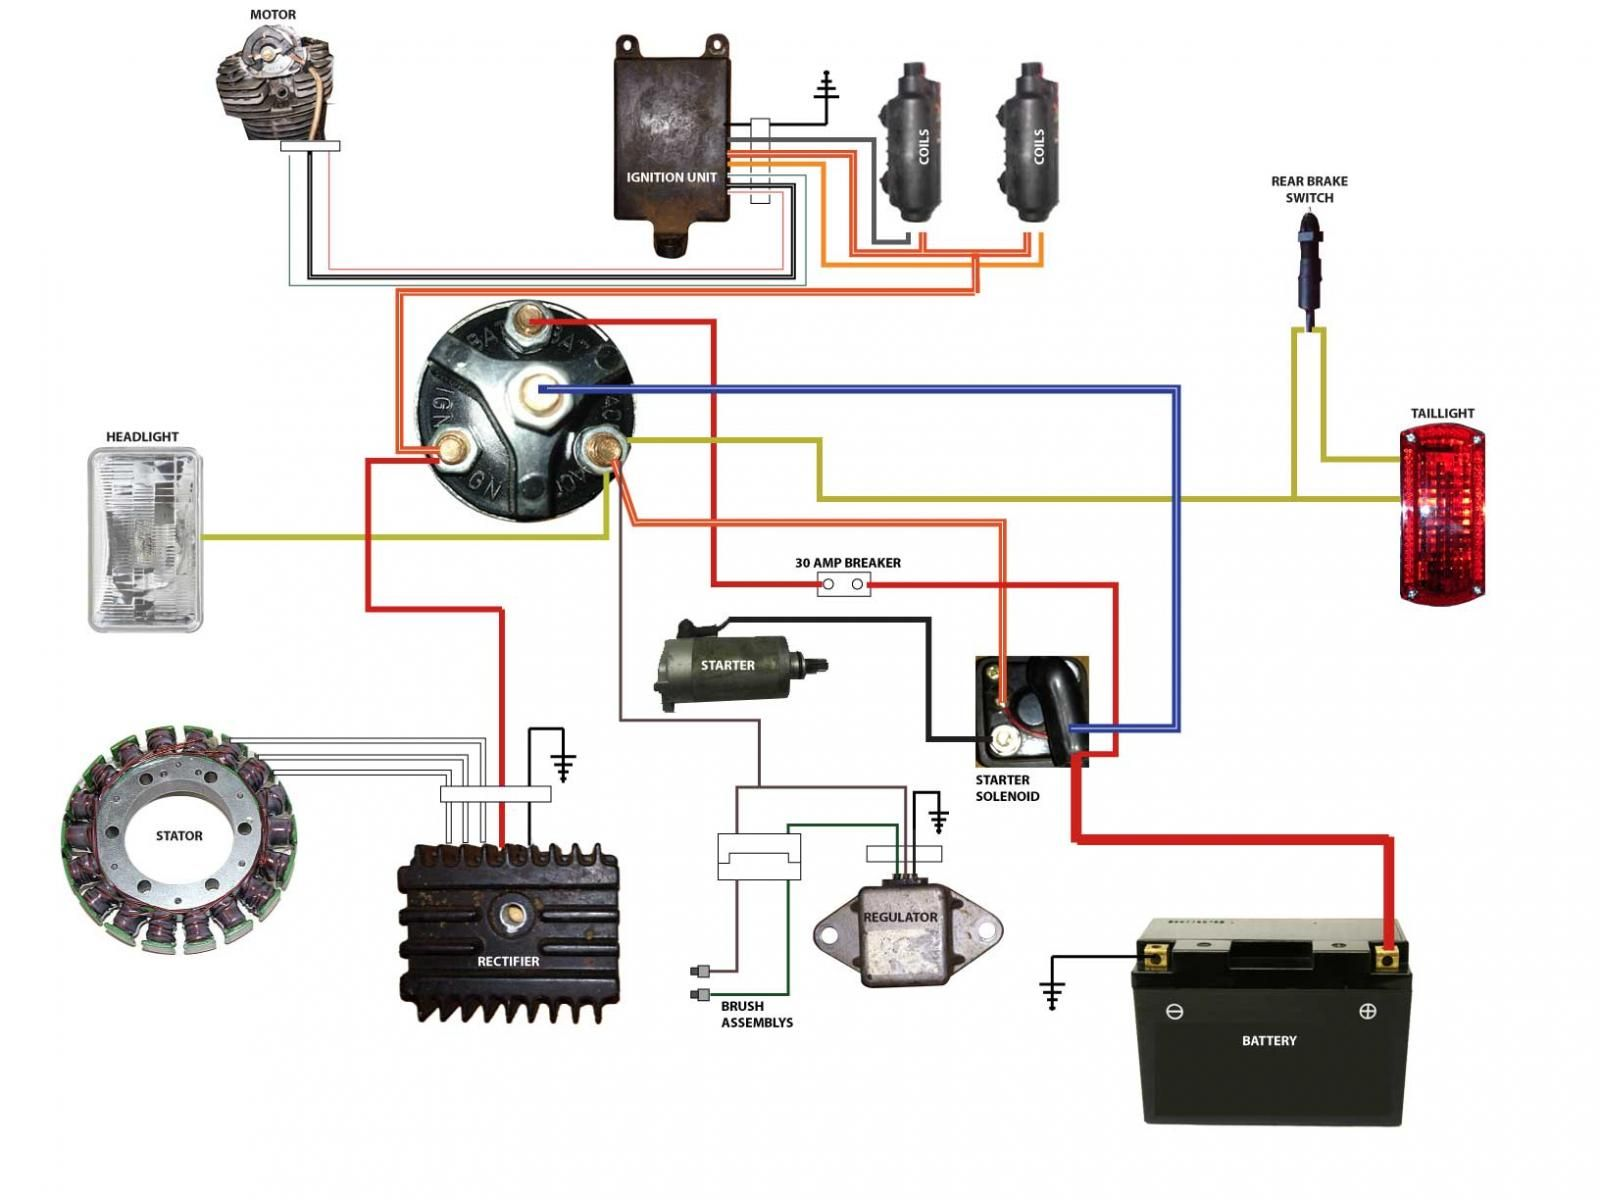 d72b6b9978ded4378b16620a38821410 simplified wiring diagram for xs400 cafe motorcycle wiring  at webbmarketing.co